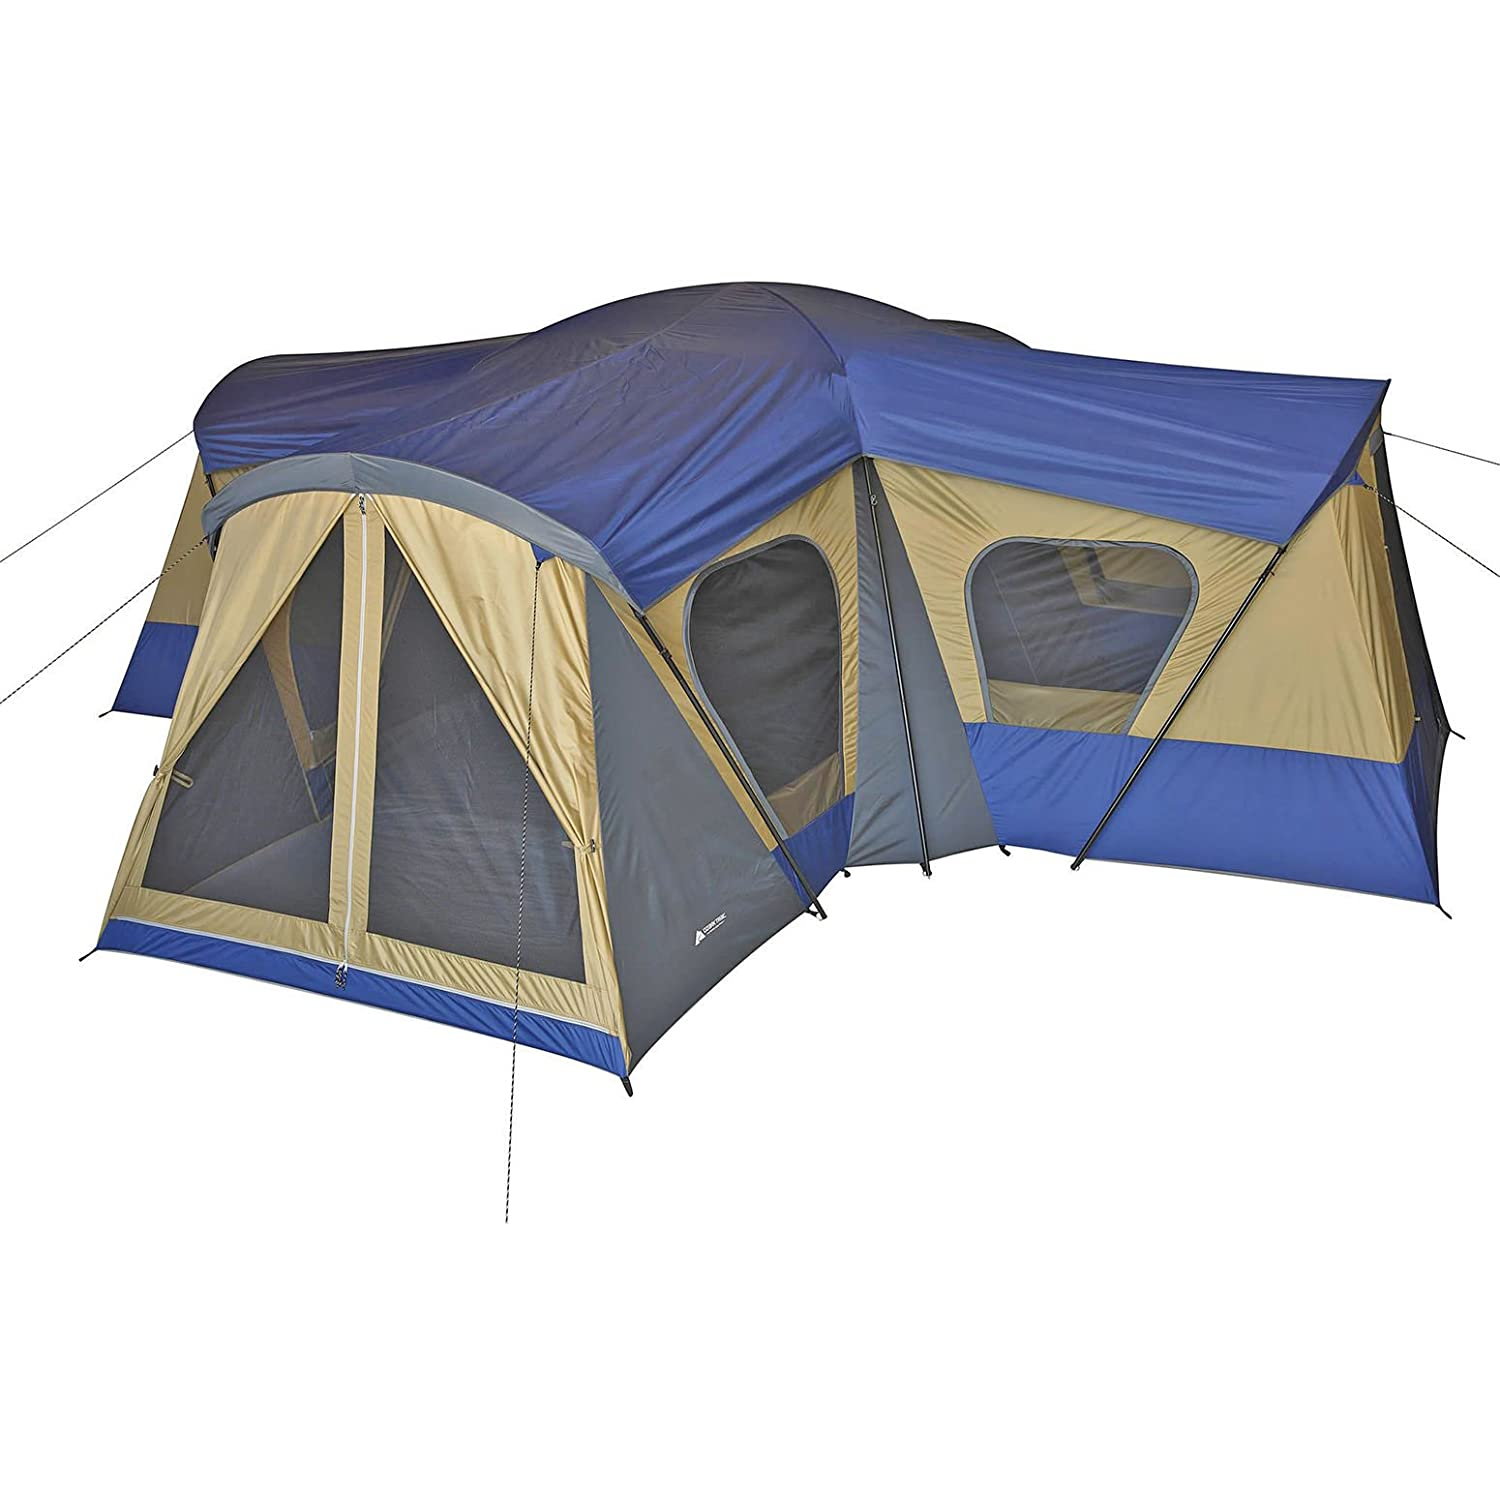 Amazon.com  Ozark Trail Base C& 14-Person Cabin Tent (Blue)  Sports u0026 Outdoors  sc 1 st  Amazon.com & Amazon.com : Ozark Trail Base Camp 14-Person Cabin Tent (Blue ...